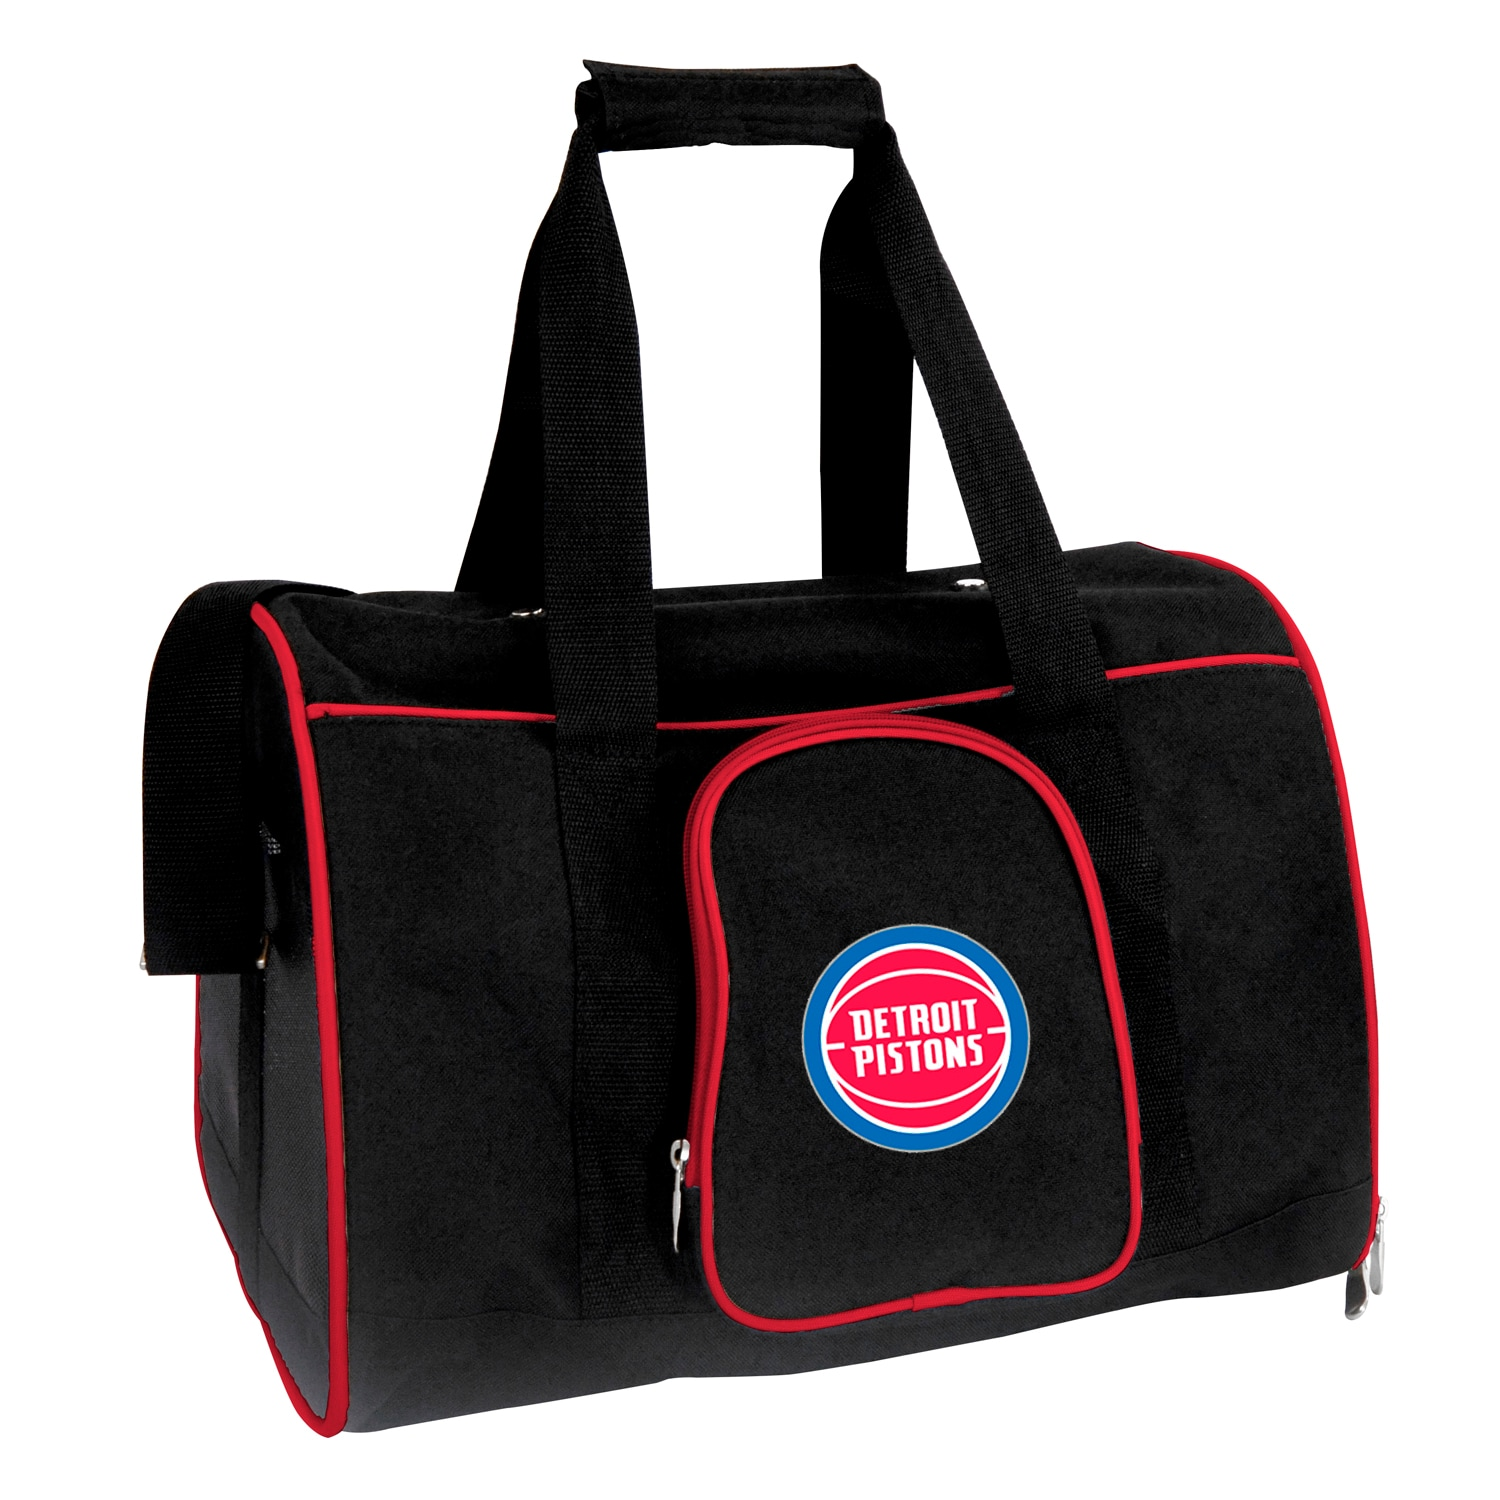 "Detroit Pistons Small 16"" Pet Carrier - Black"